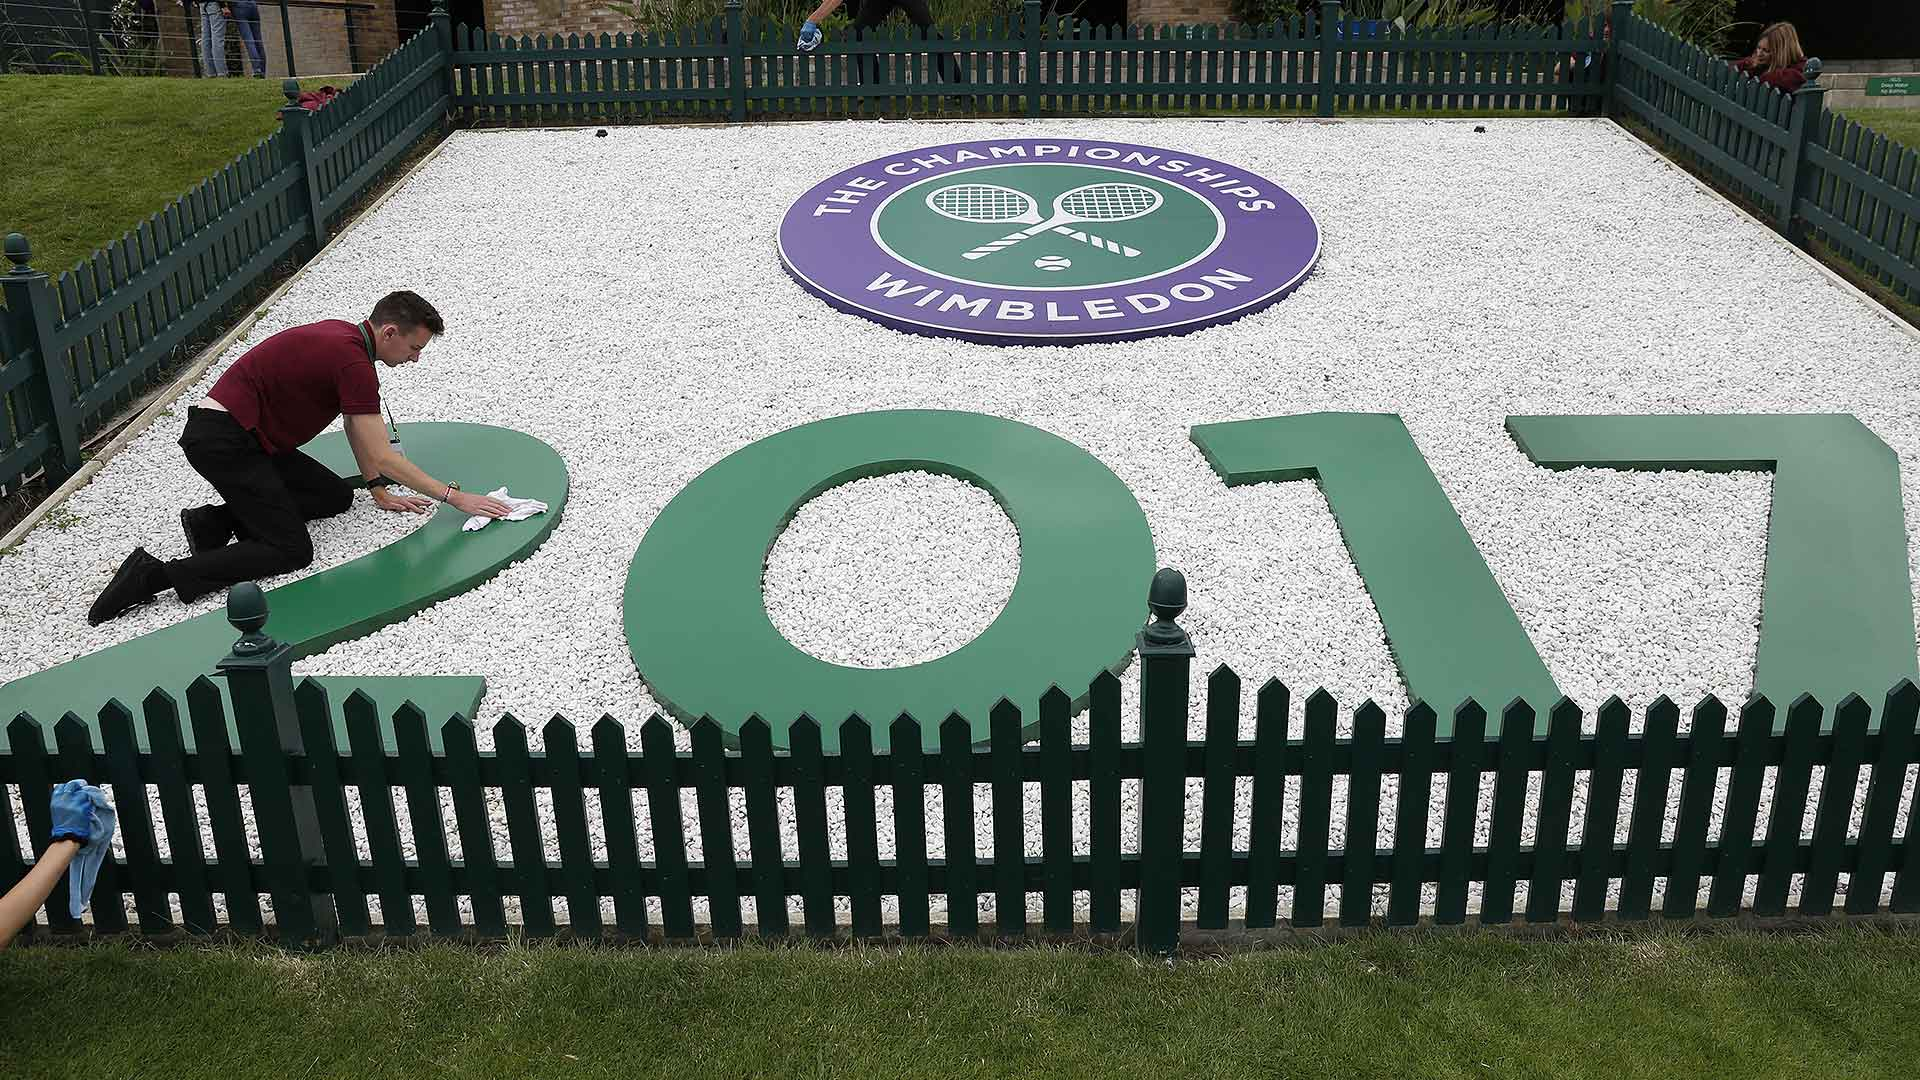 12 Things To Watch At #Wimbledon: https://t.co/2DBwKHubEL #ATP https://t.co/dUEnmqM15R